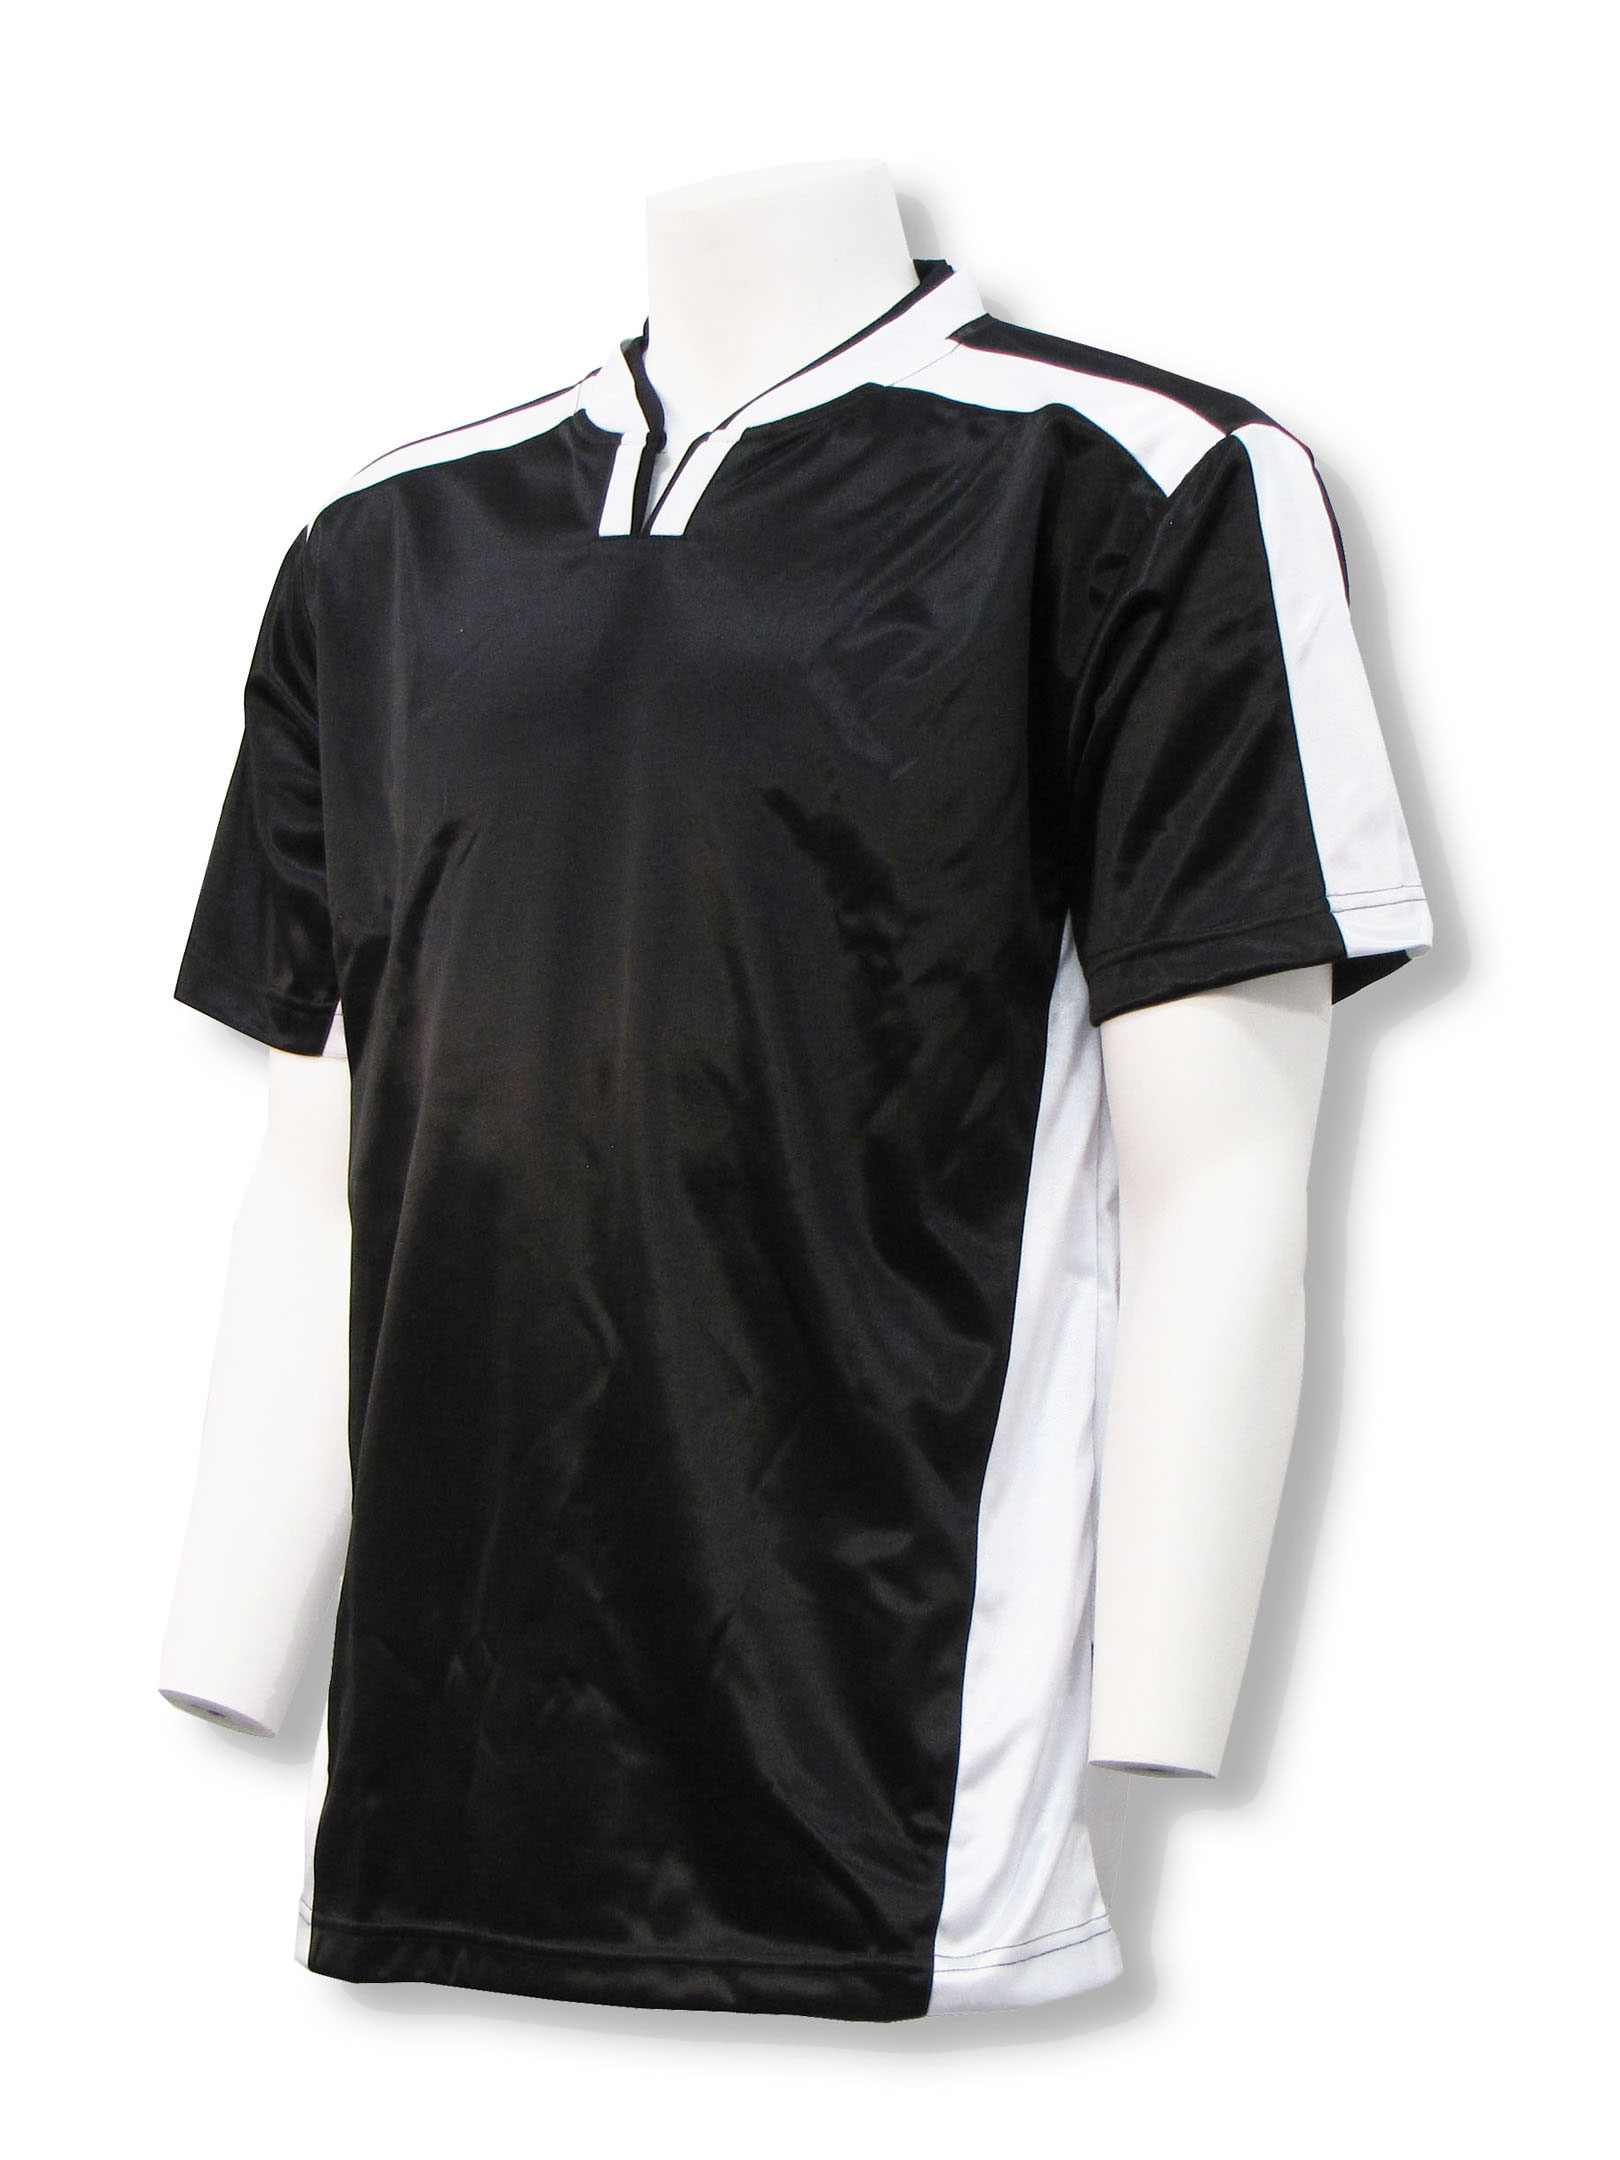 Winchester soccer jersey in black/white by Code Four Athletics